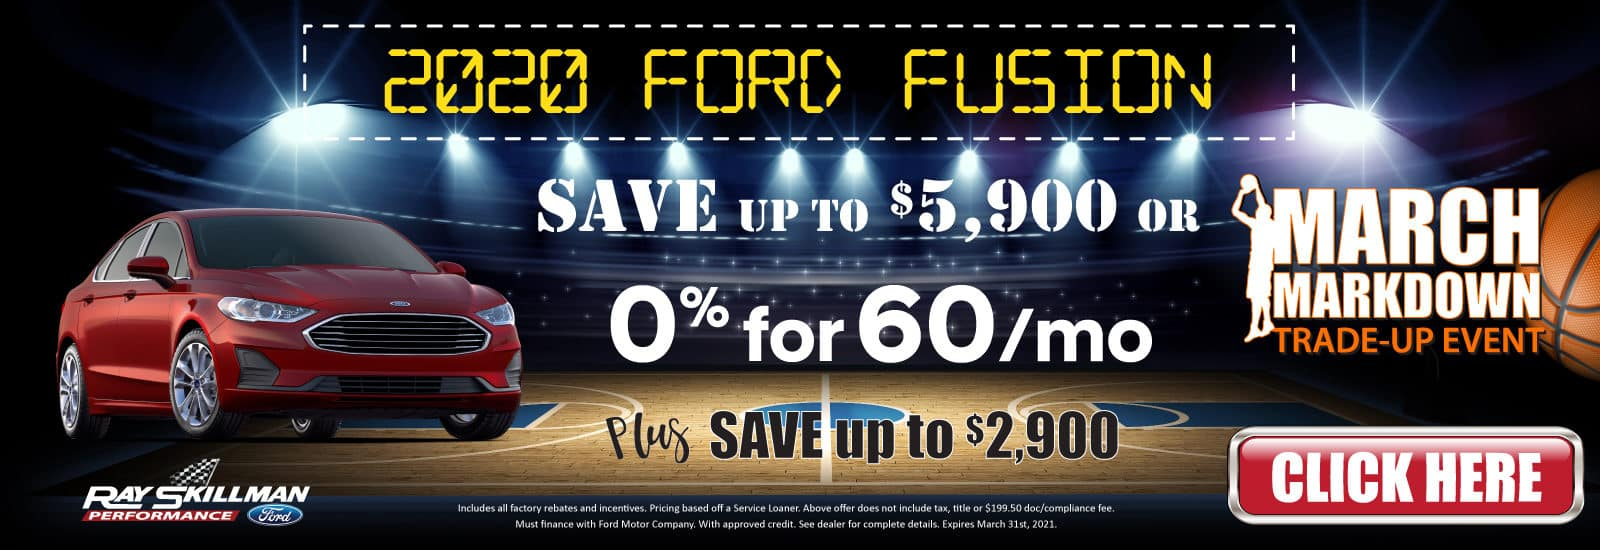 March2020-Ford-Fusion-Web-Banner-1600×550